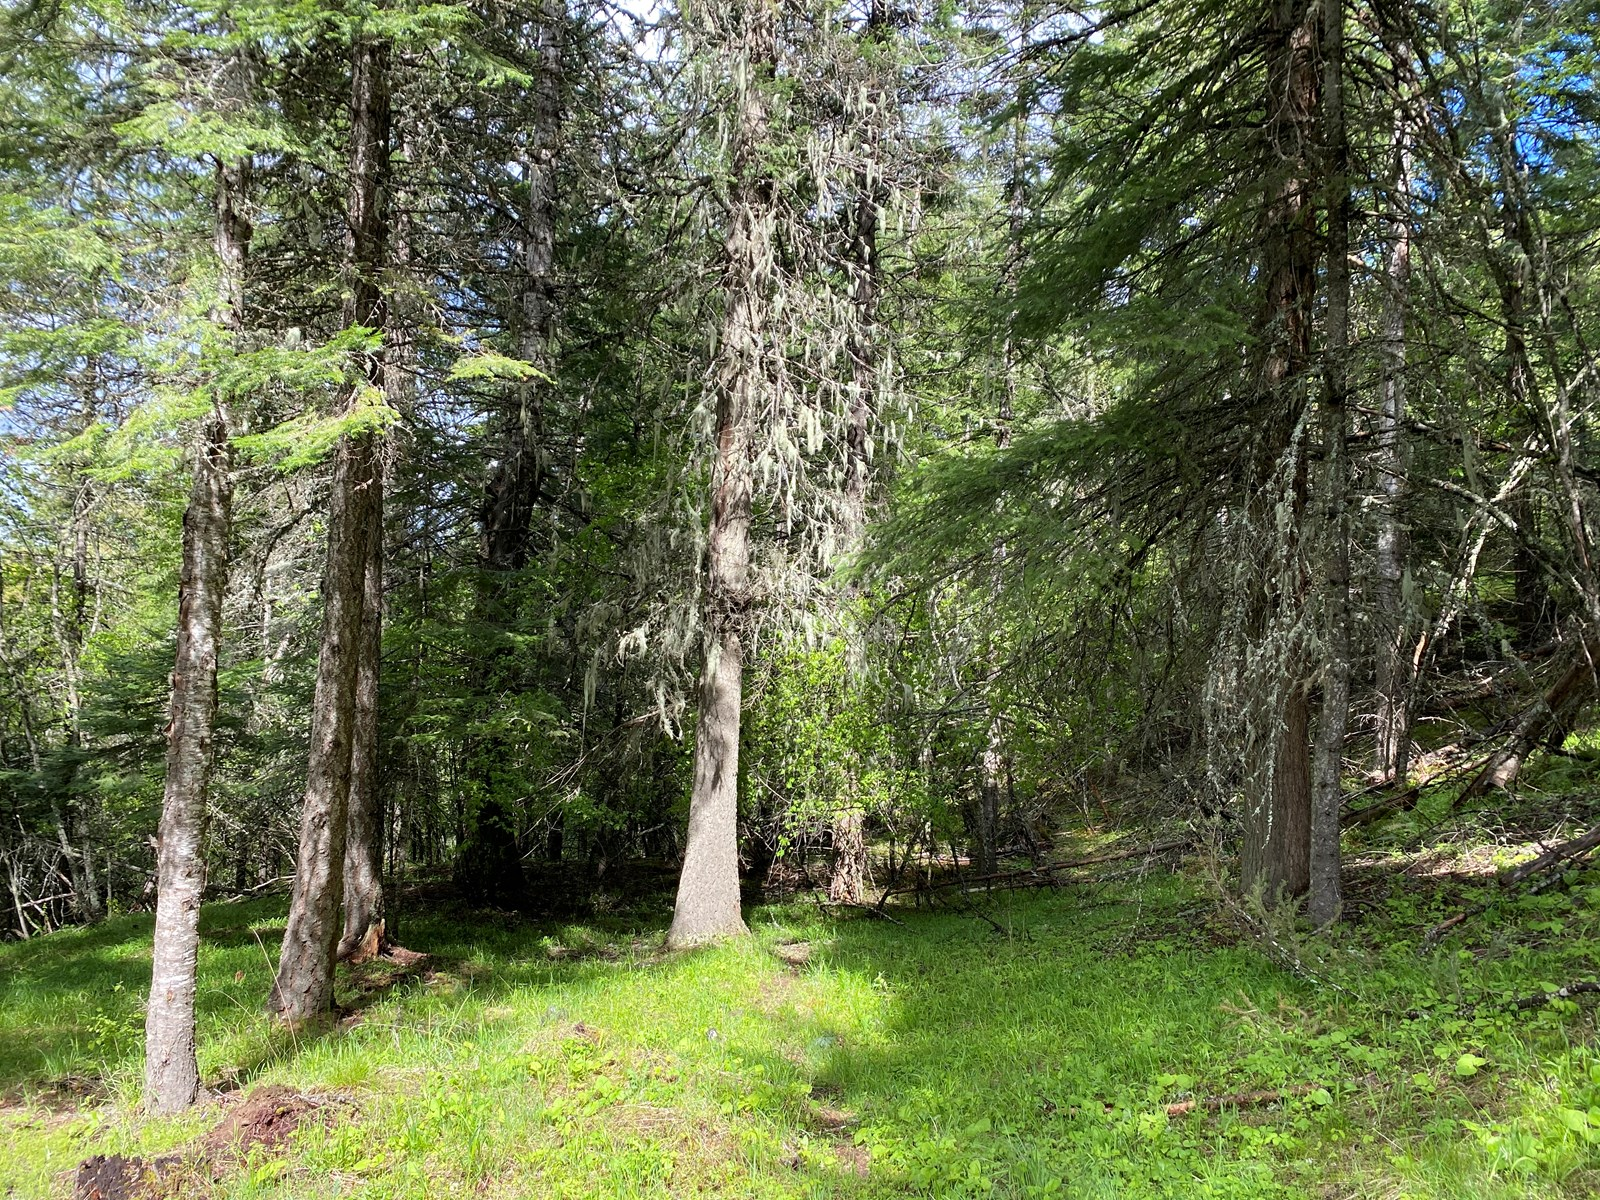 Orofino, ID Recreational Land for Sale, Timberland, Campsite